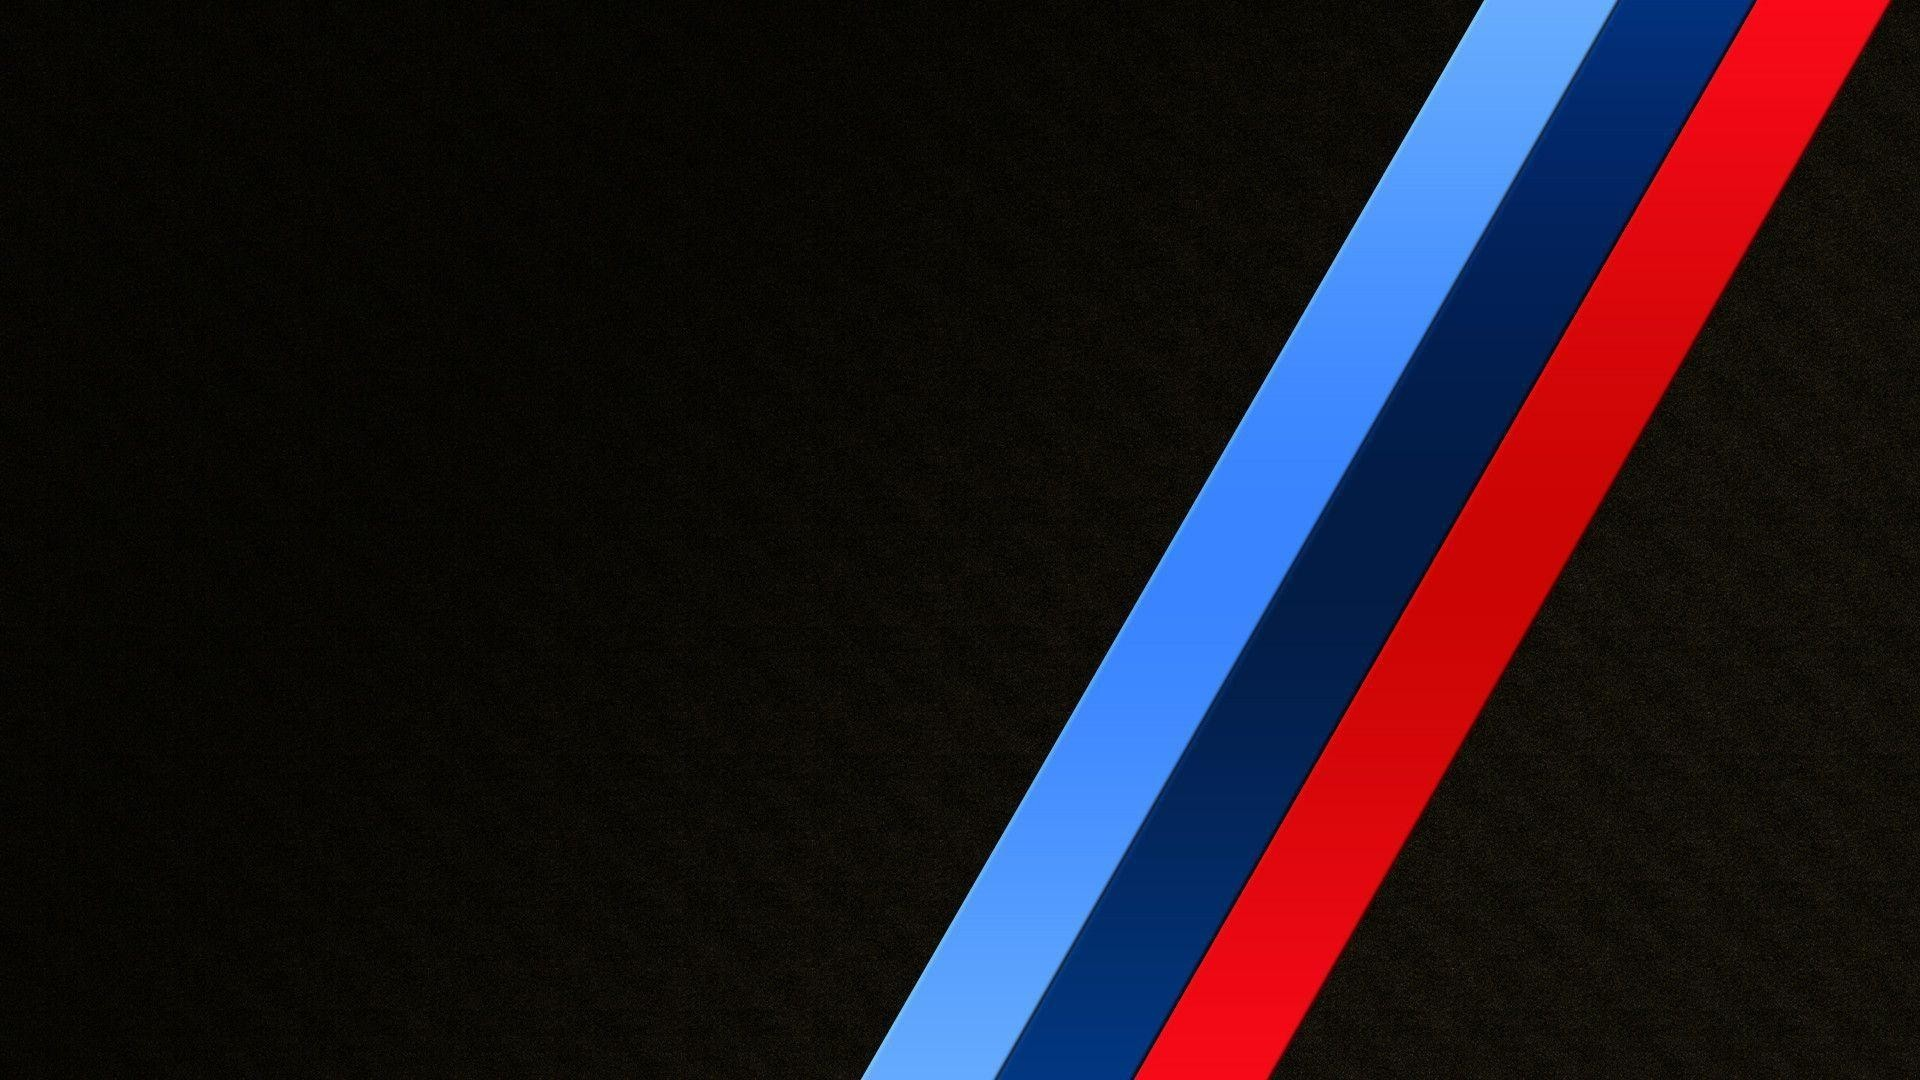 BMW Logo Wallpapers (65+ images)